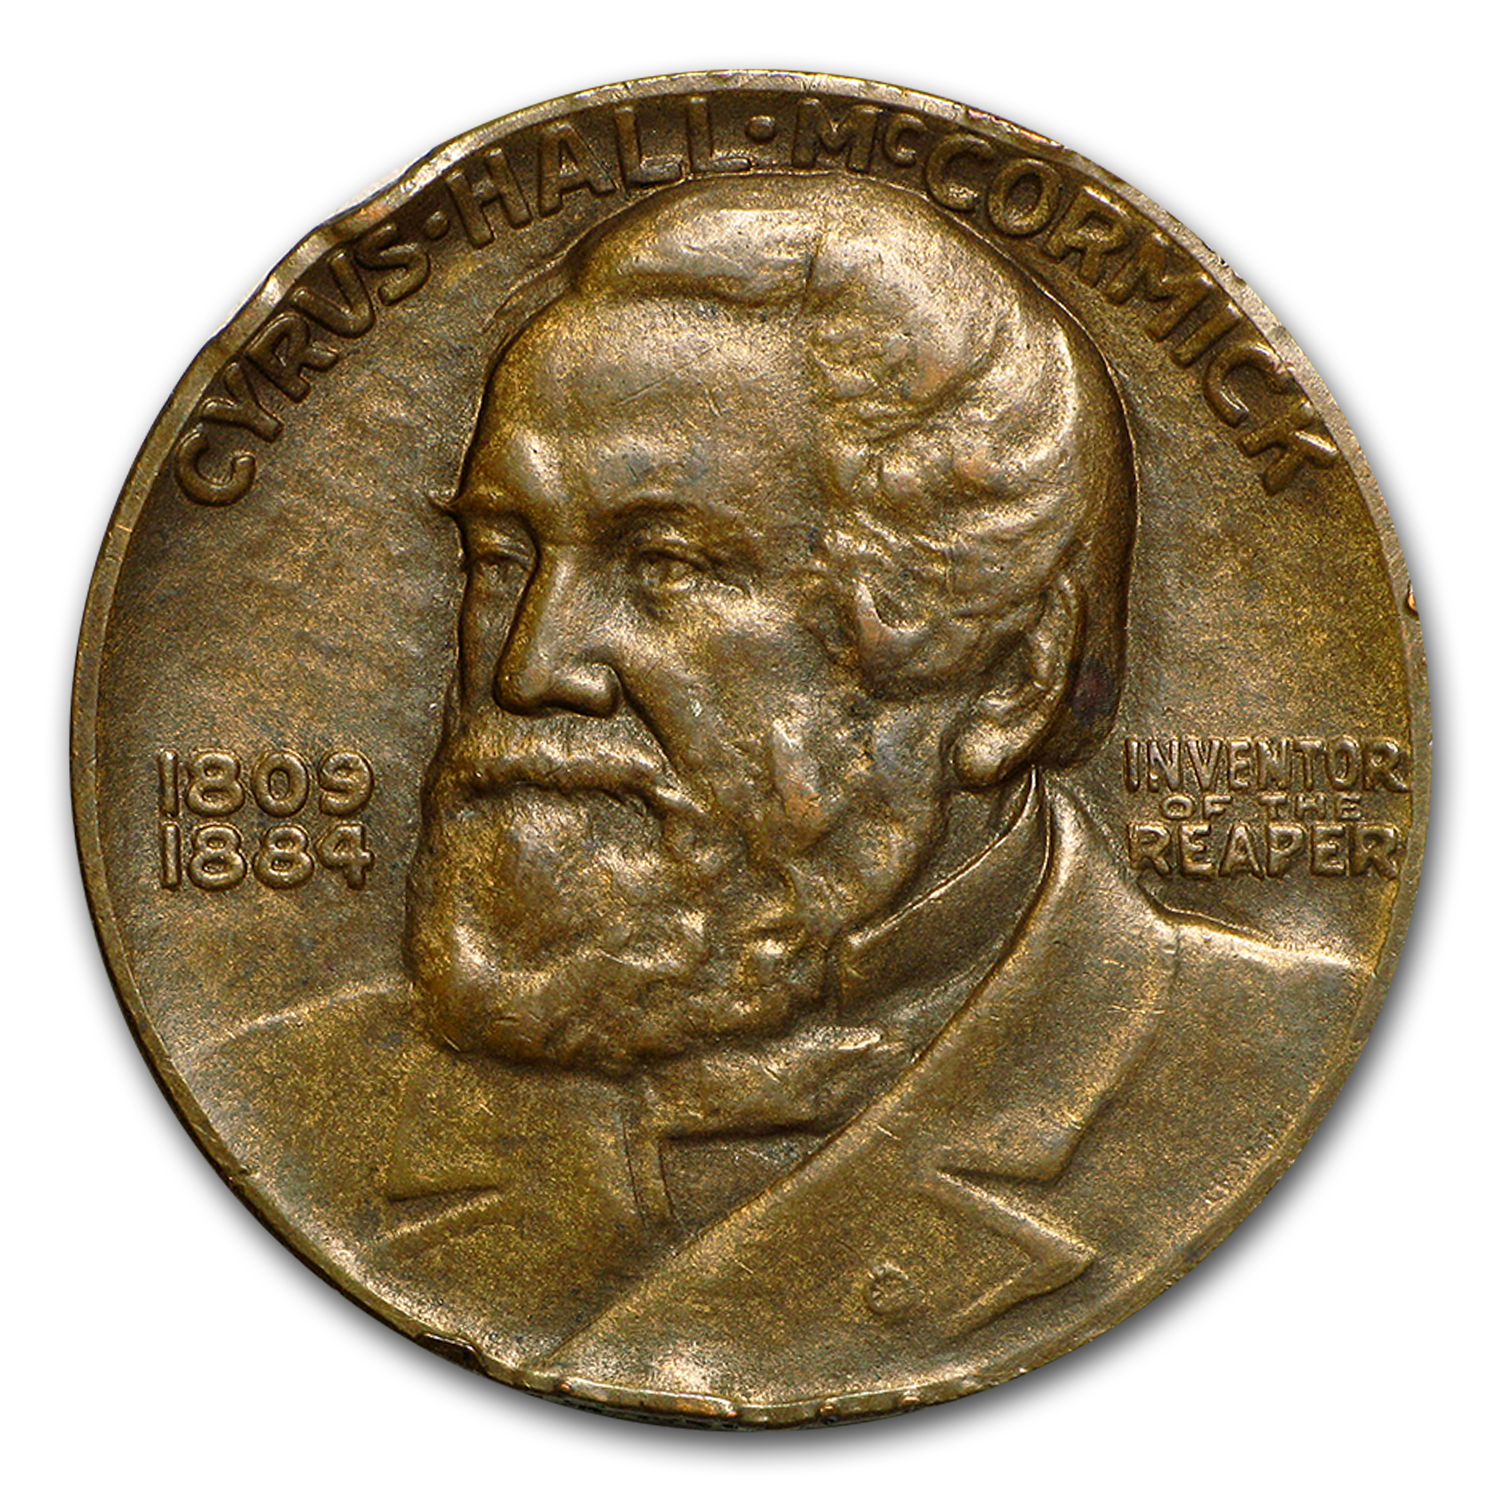 1931 Centennial of the Reaper Cyrus McCormick Bronze Medal